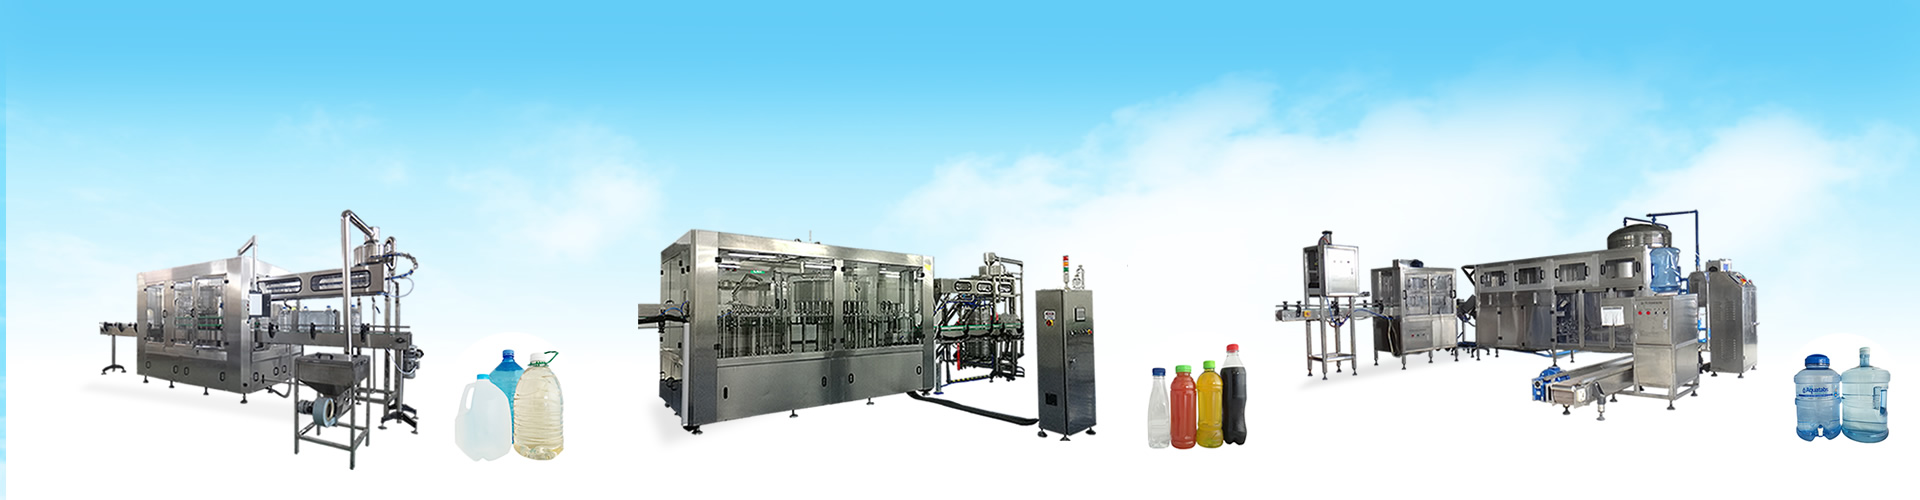 High-quality Water Line, Automatic Filling Machine | J&d -J&D WATER